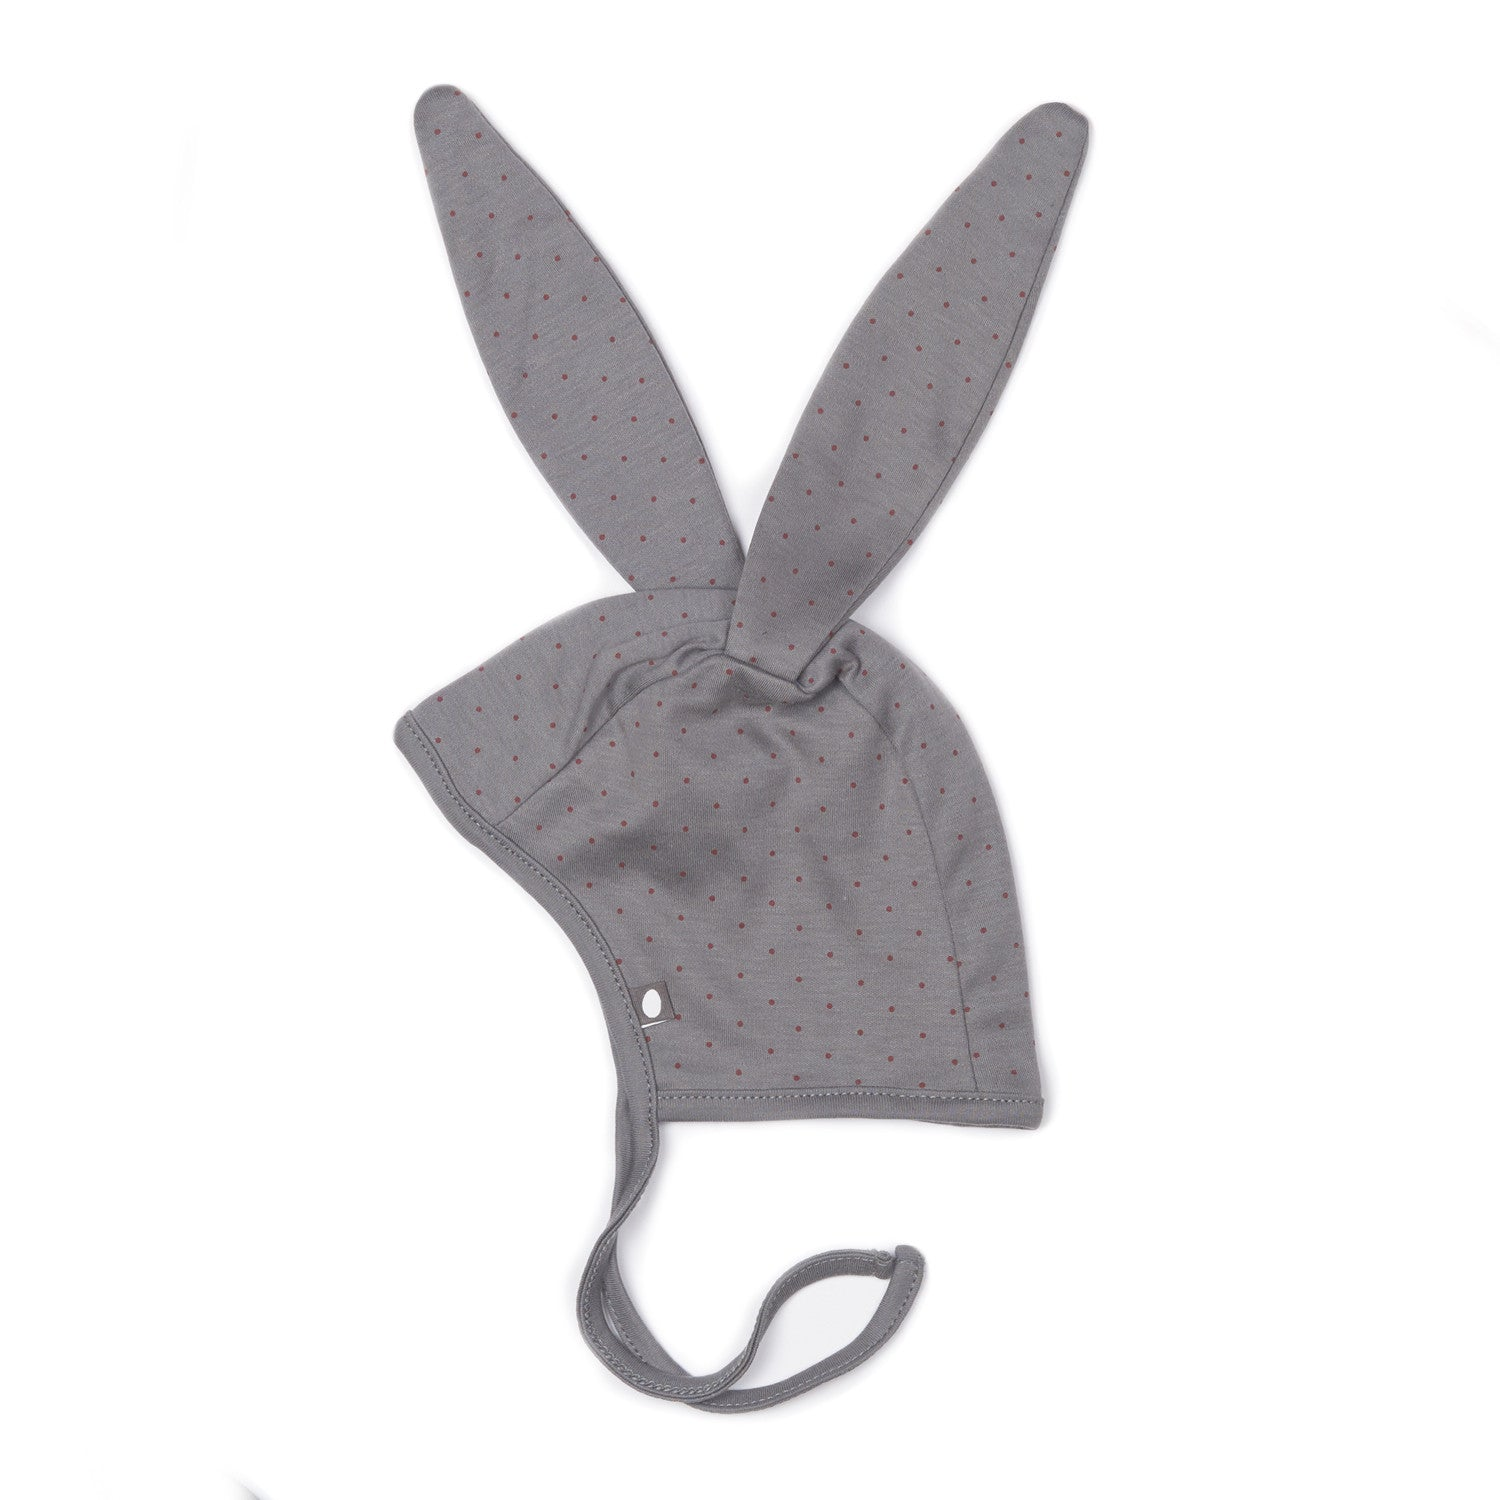 Bunny hat in Pima cotton by OEUF NYC